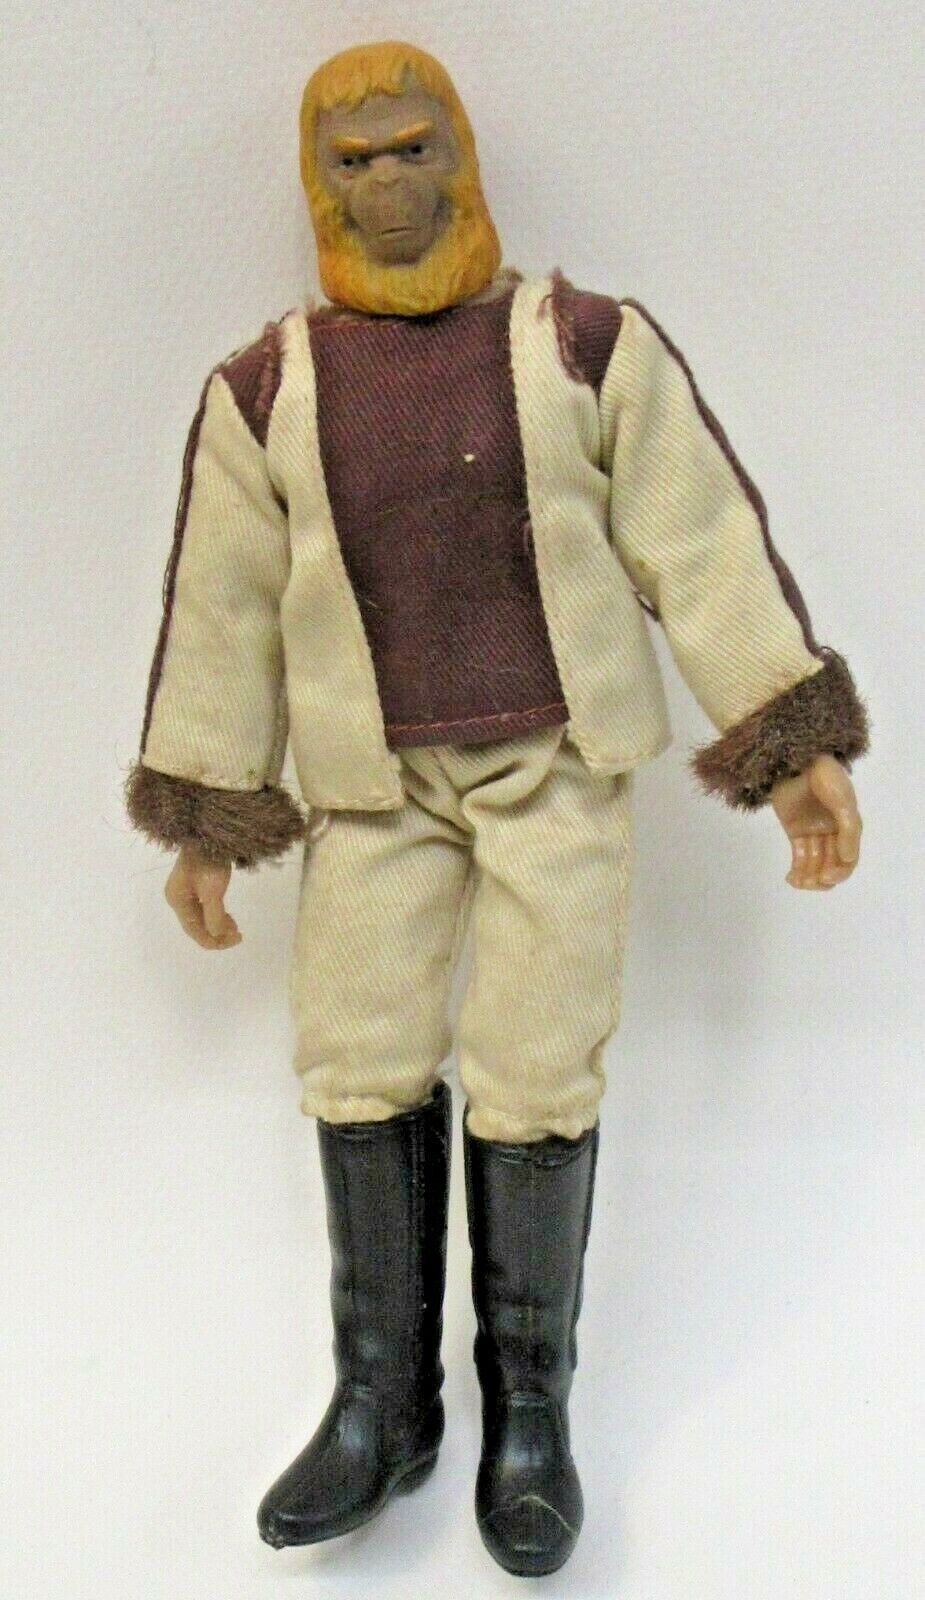 Original 1974 Mego Planet of the Apes DR. ZAIUS TV Show 8  Action Figure Doll r2